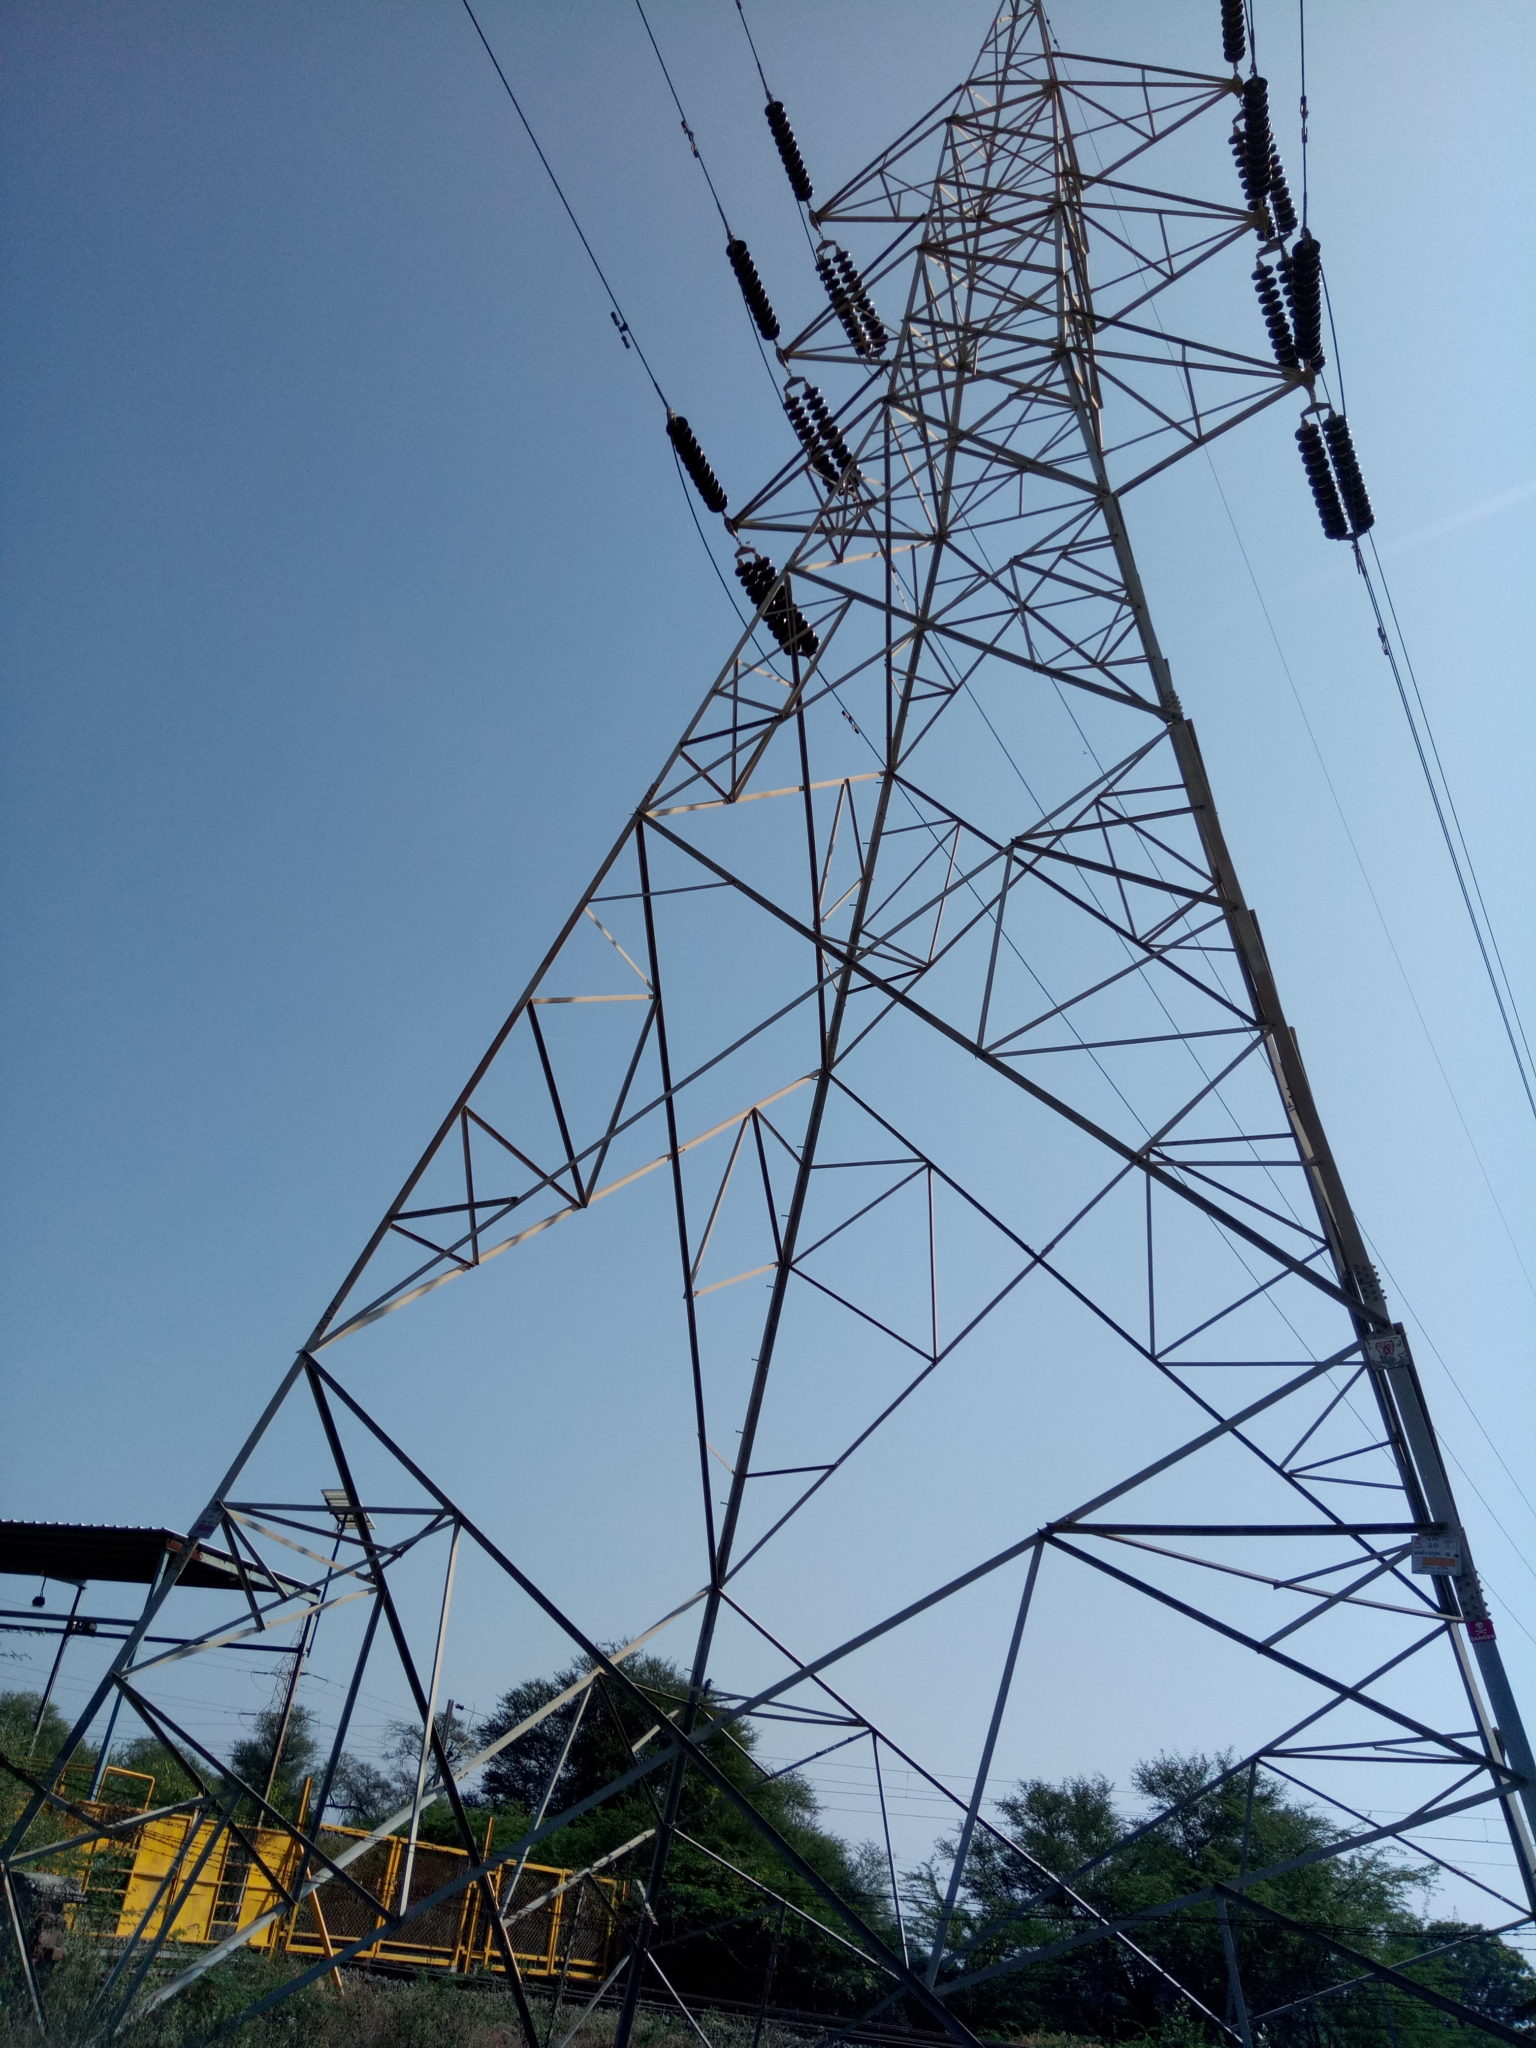 Living near high voltage power lines. What is the risk?